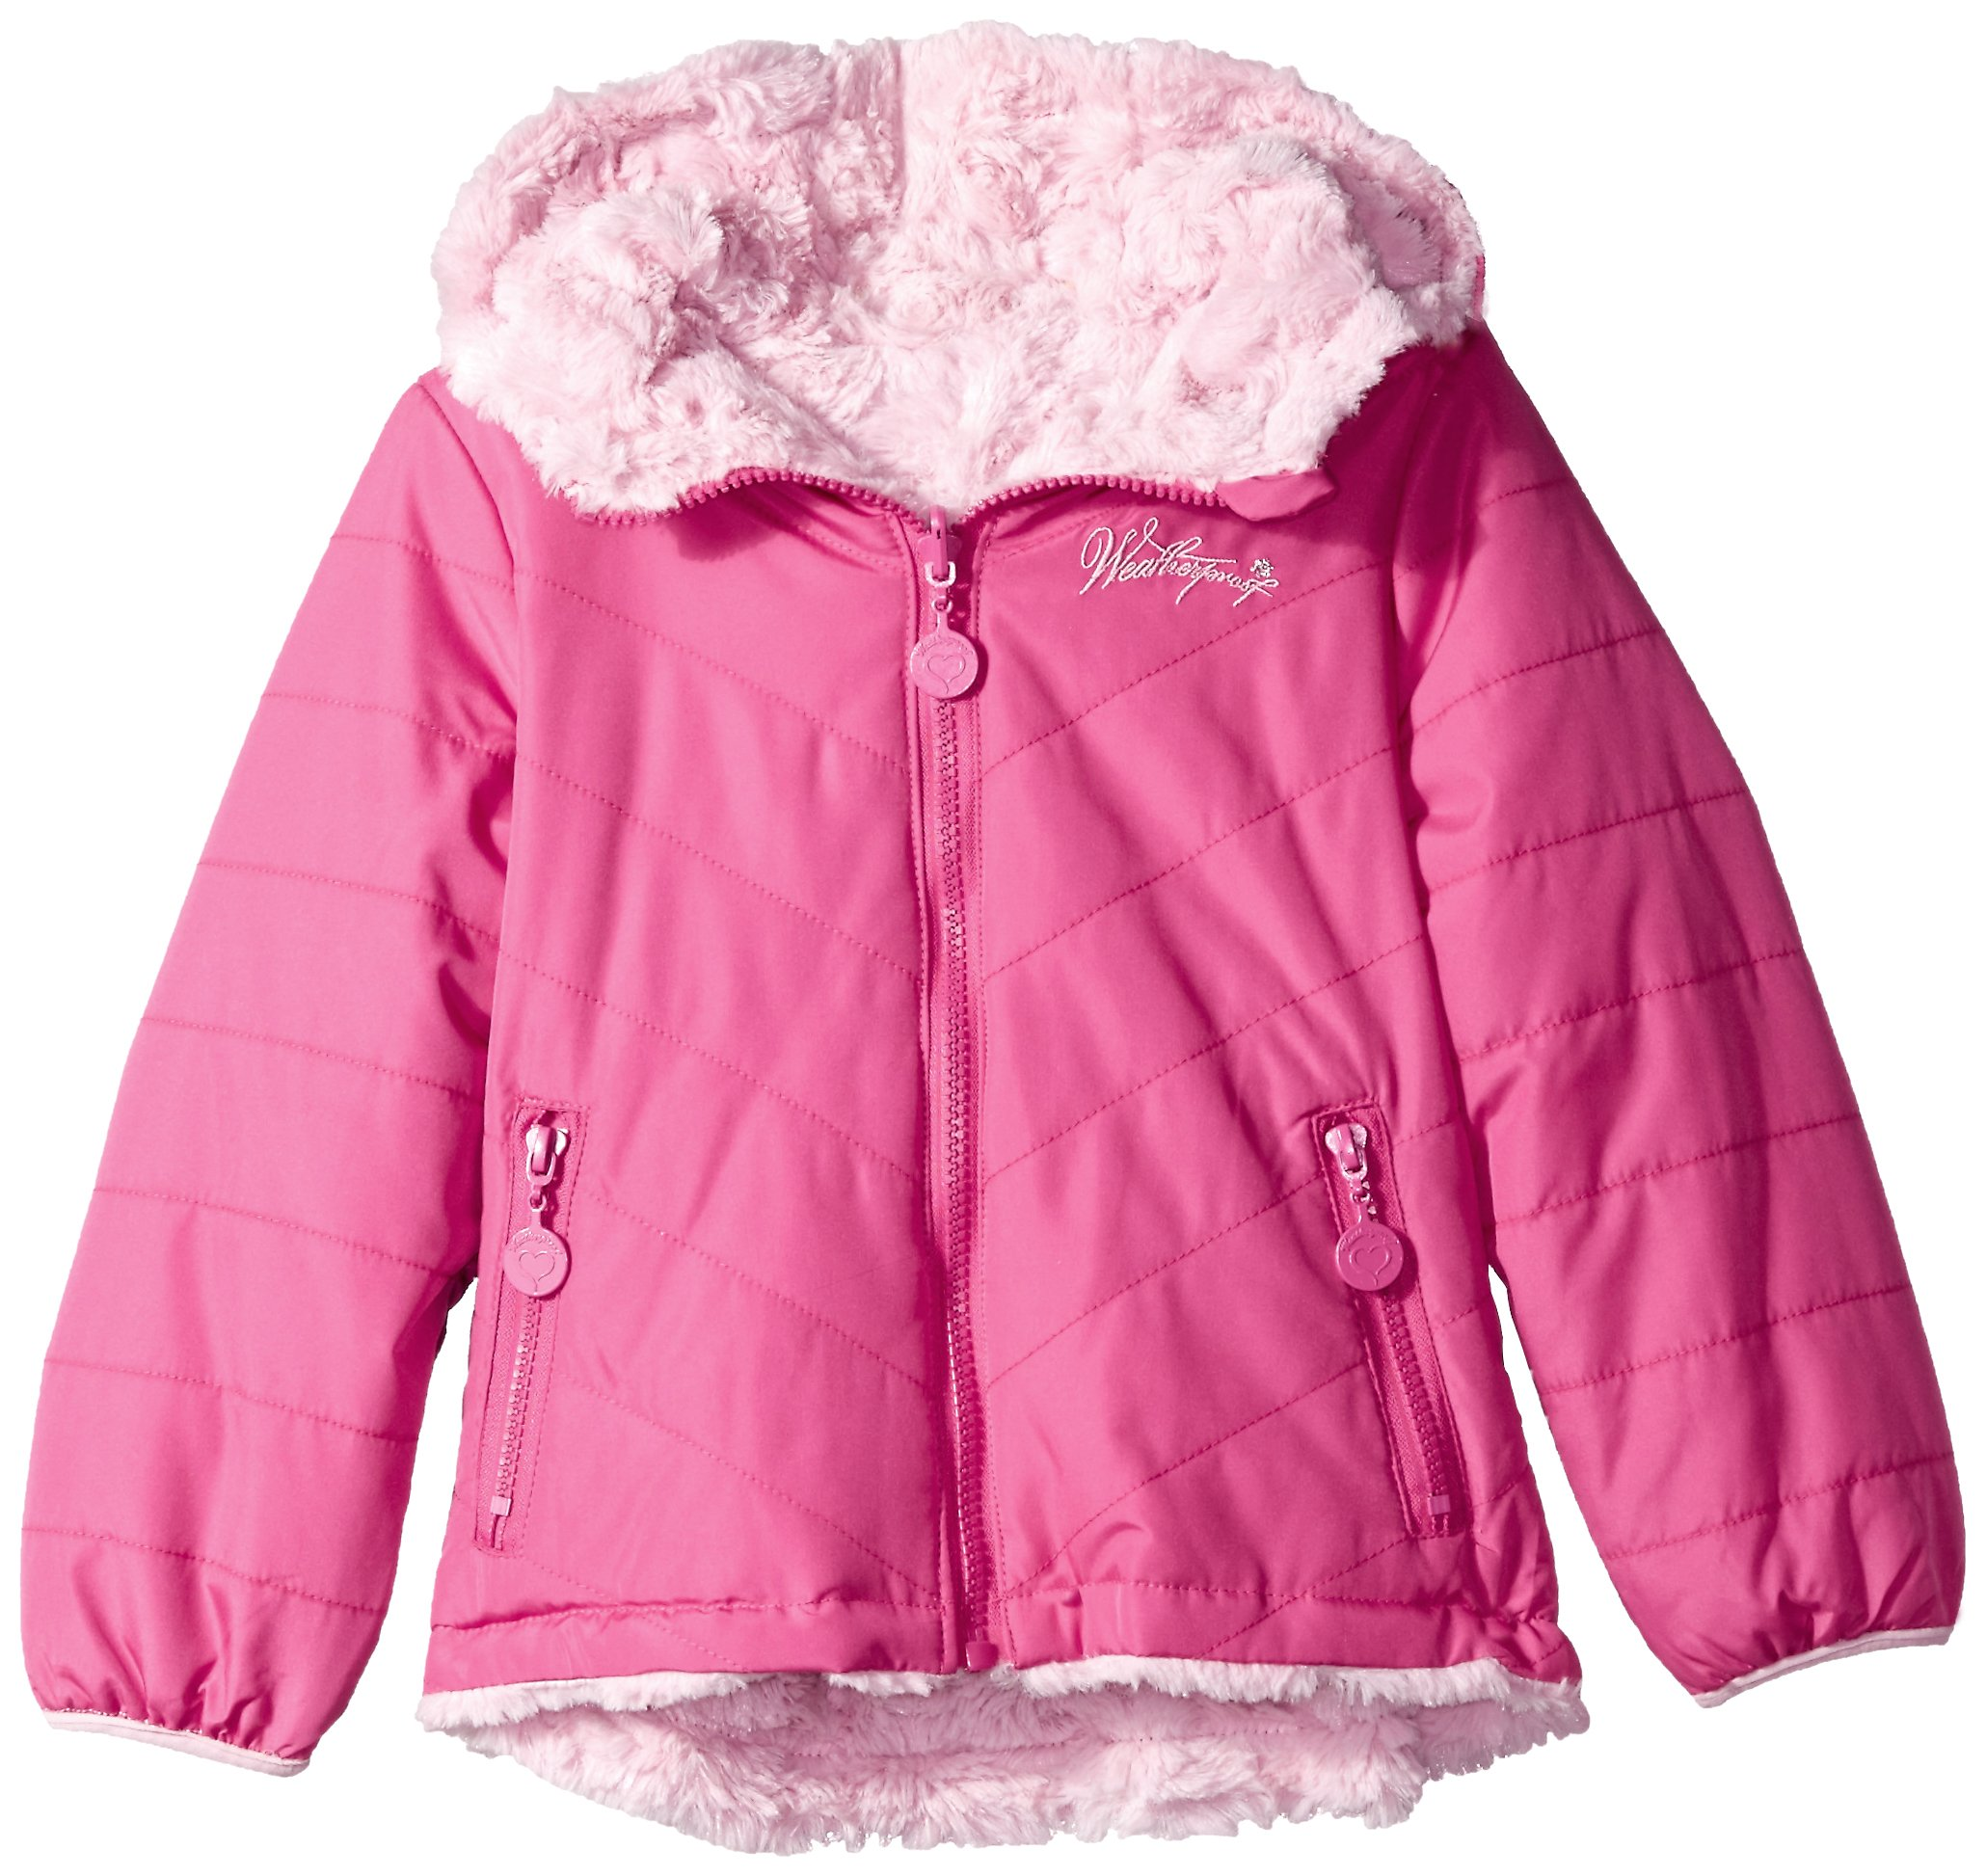 Weatherproof Toddler Girls' Outerwear Jacket (More Styles Available), Reversible-WG202-Fuchsia/Light Pink, 2T